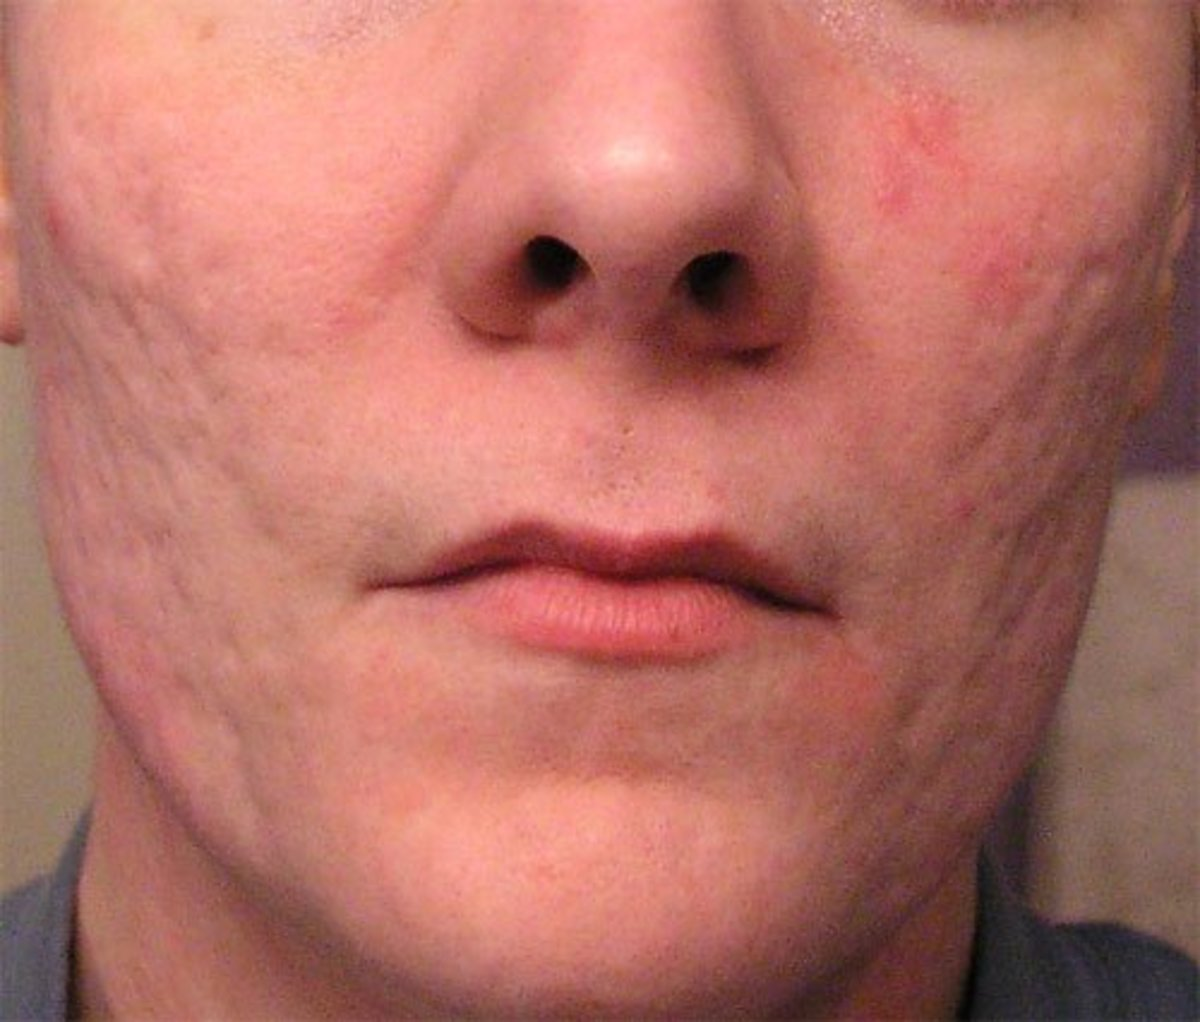 A man over the age of 40 with deep acne scars.